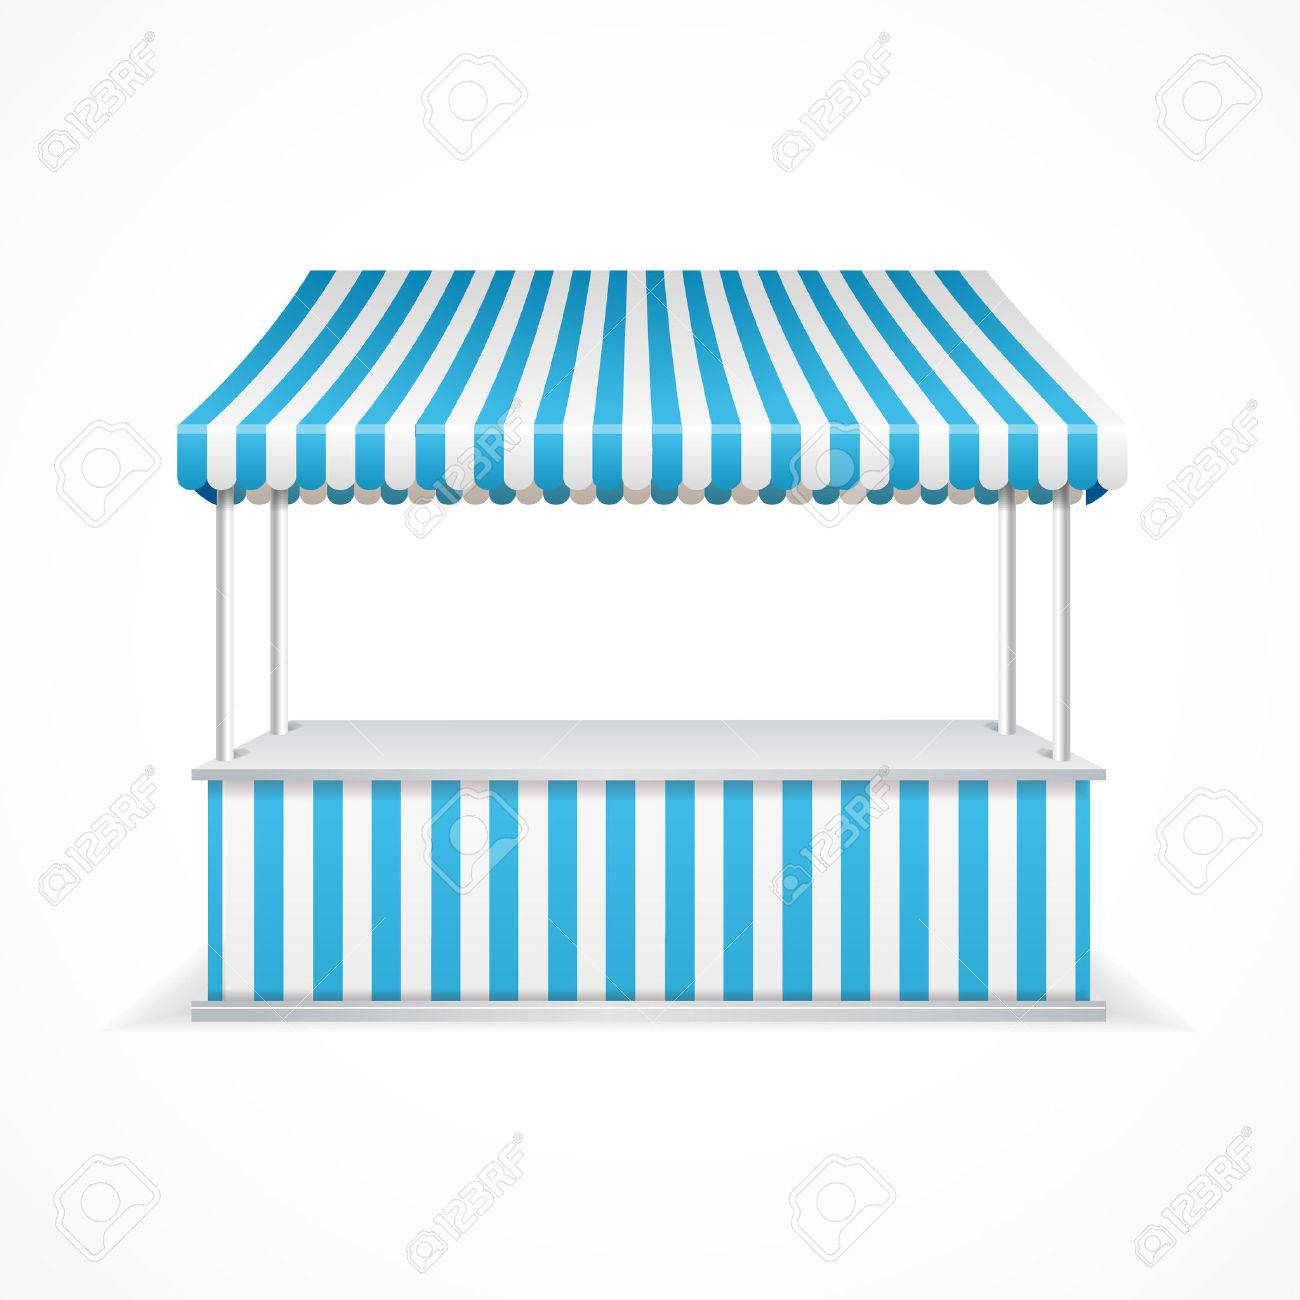 Market stall clipart 9 » Clipart Station.